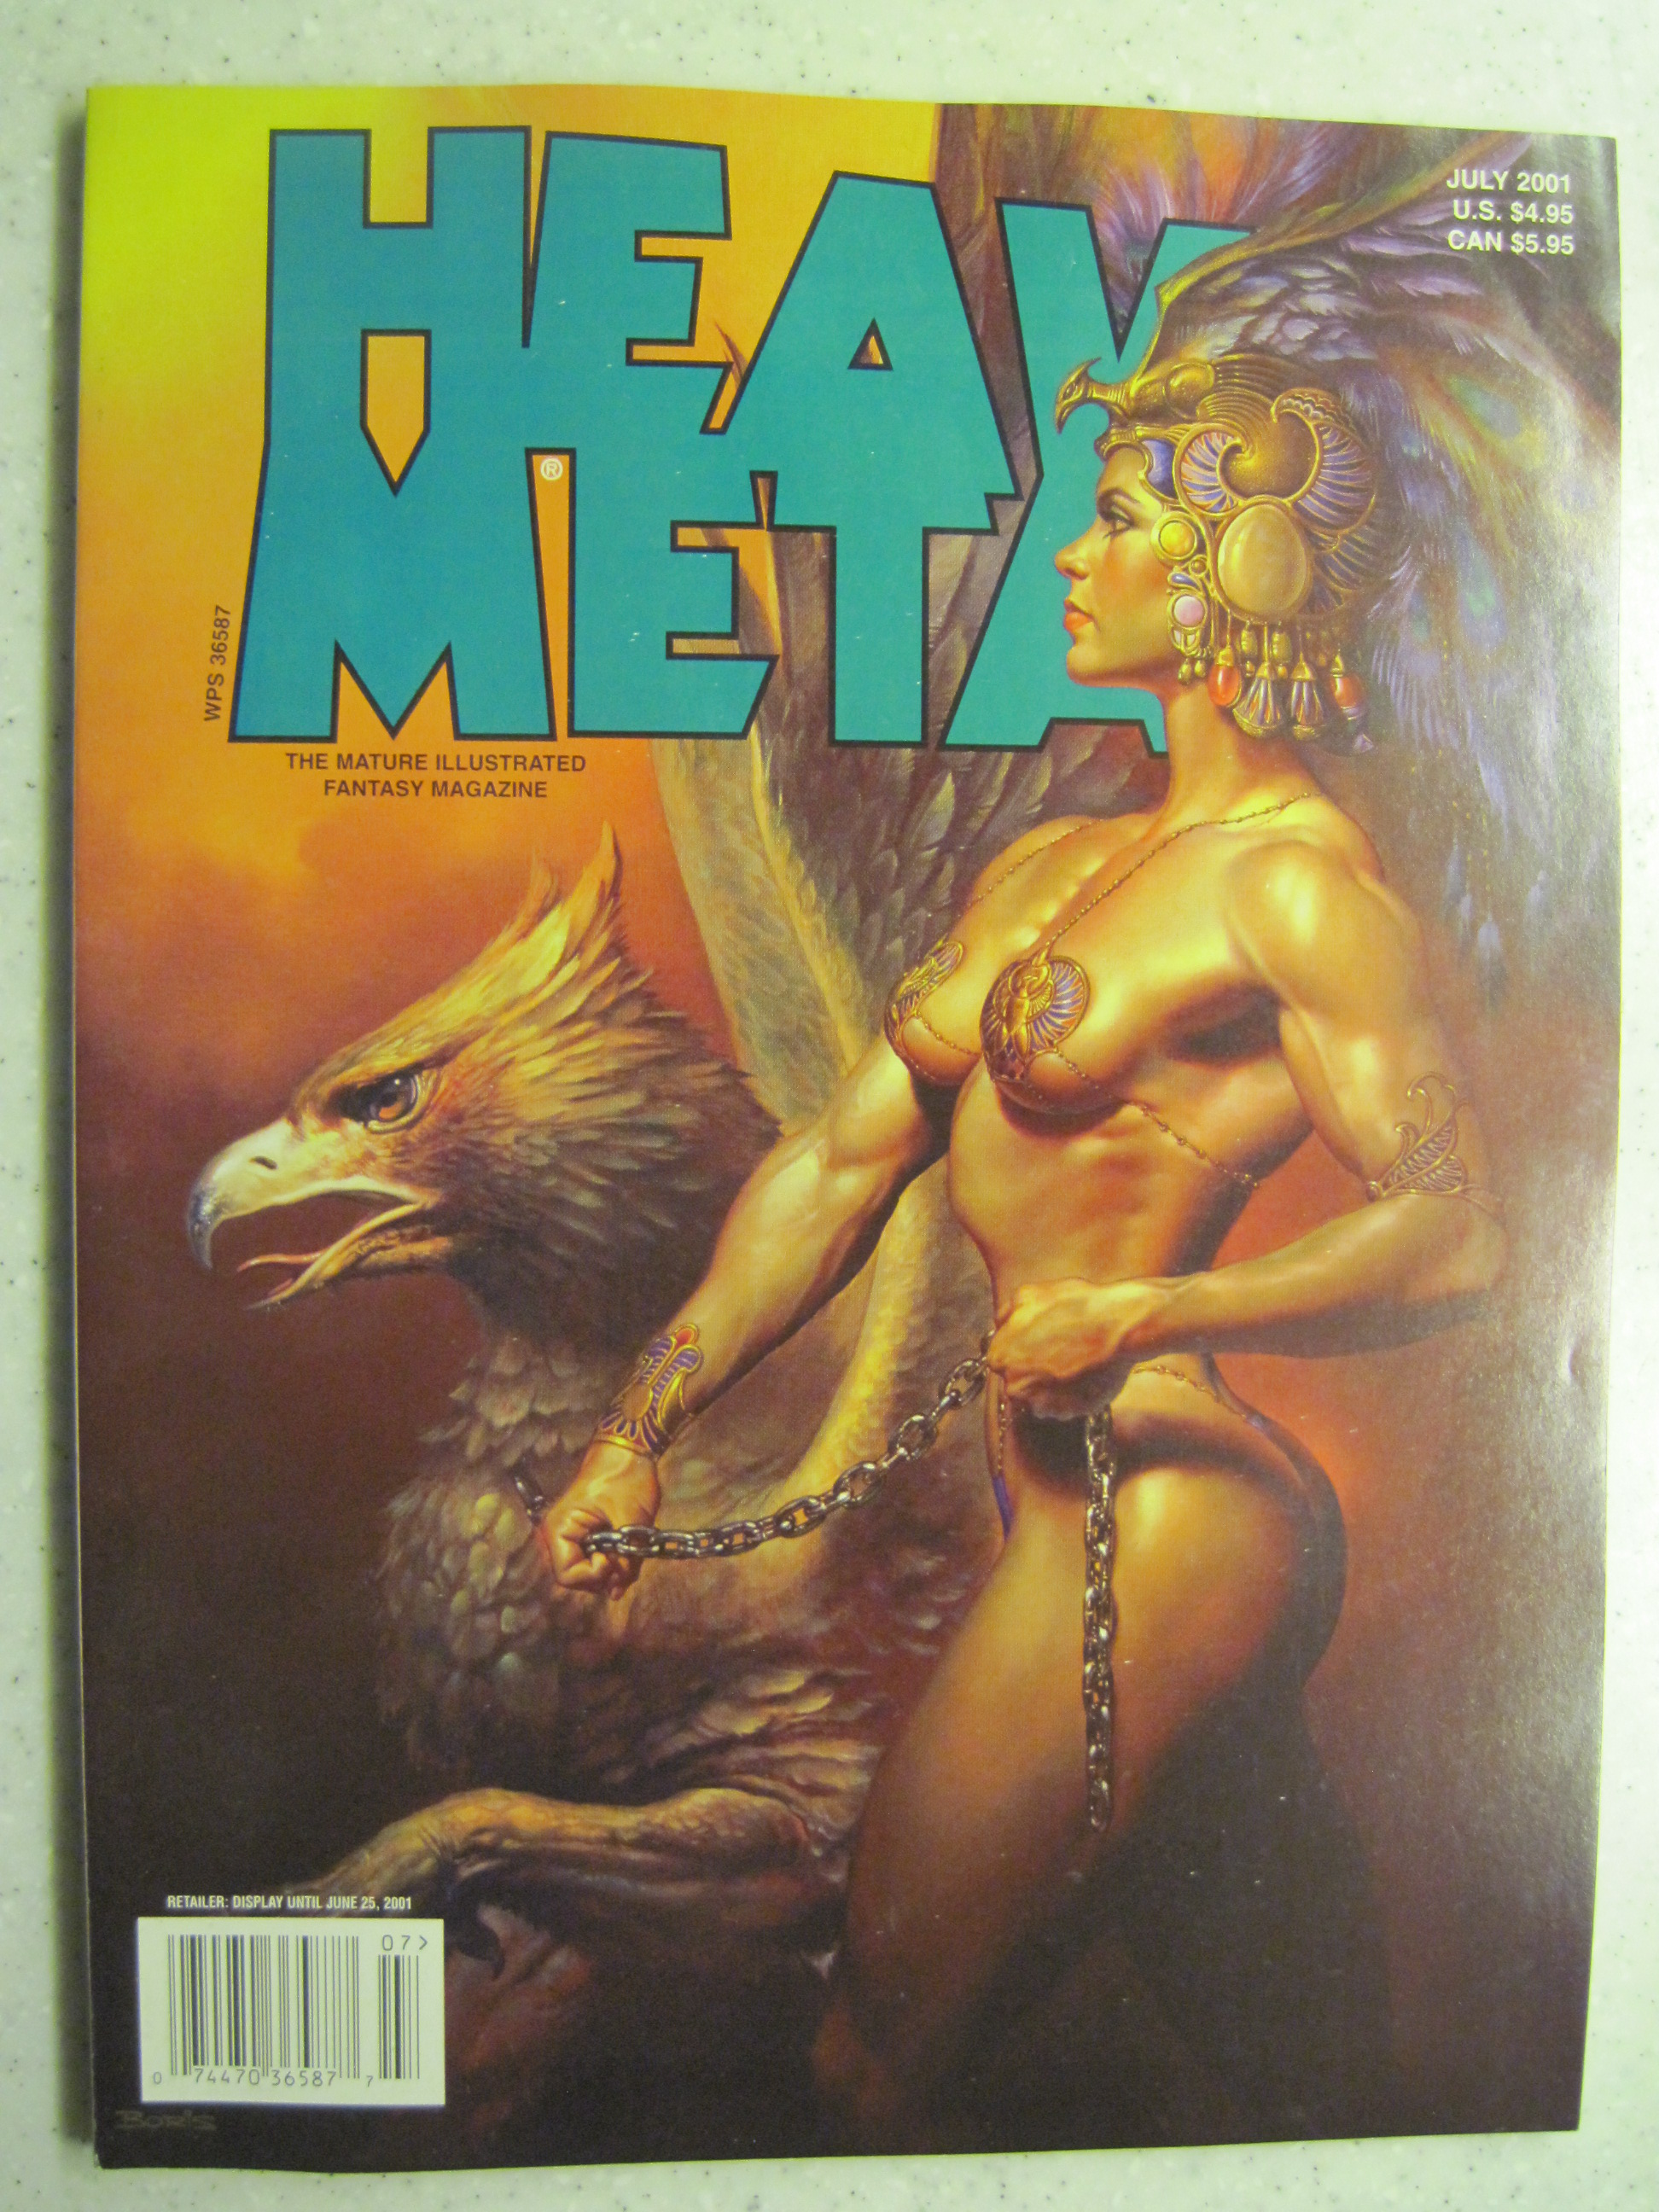 HEAVY METAL MAGAZINE JUL 2001 VF/NM